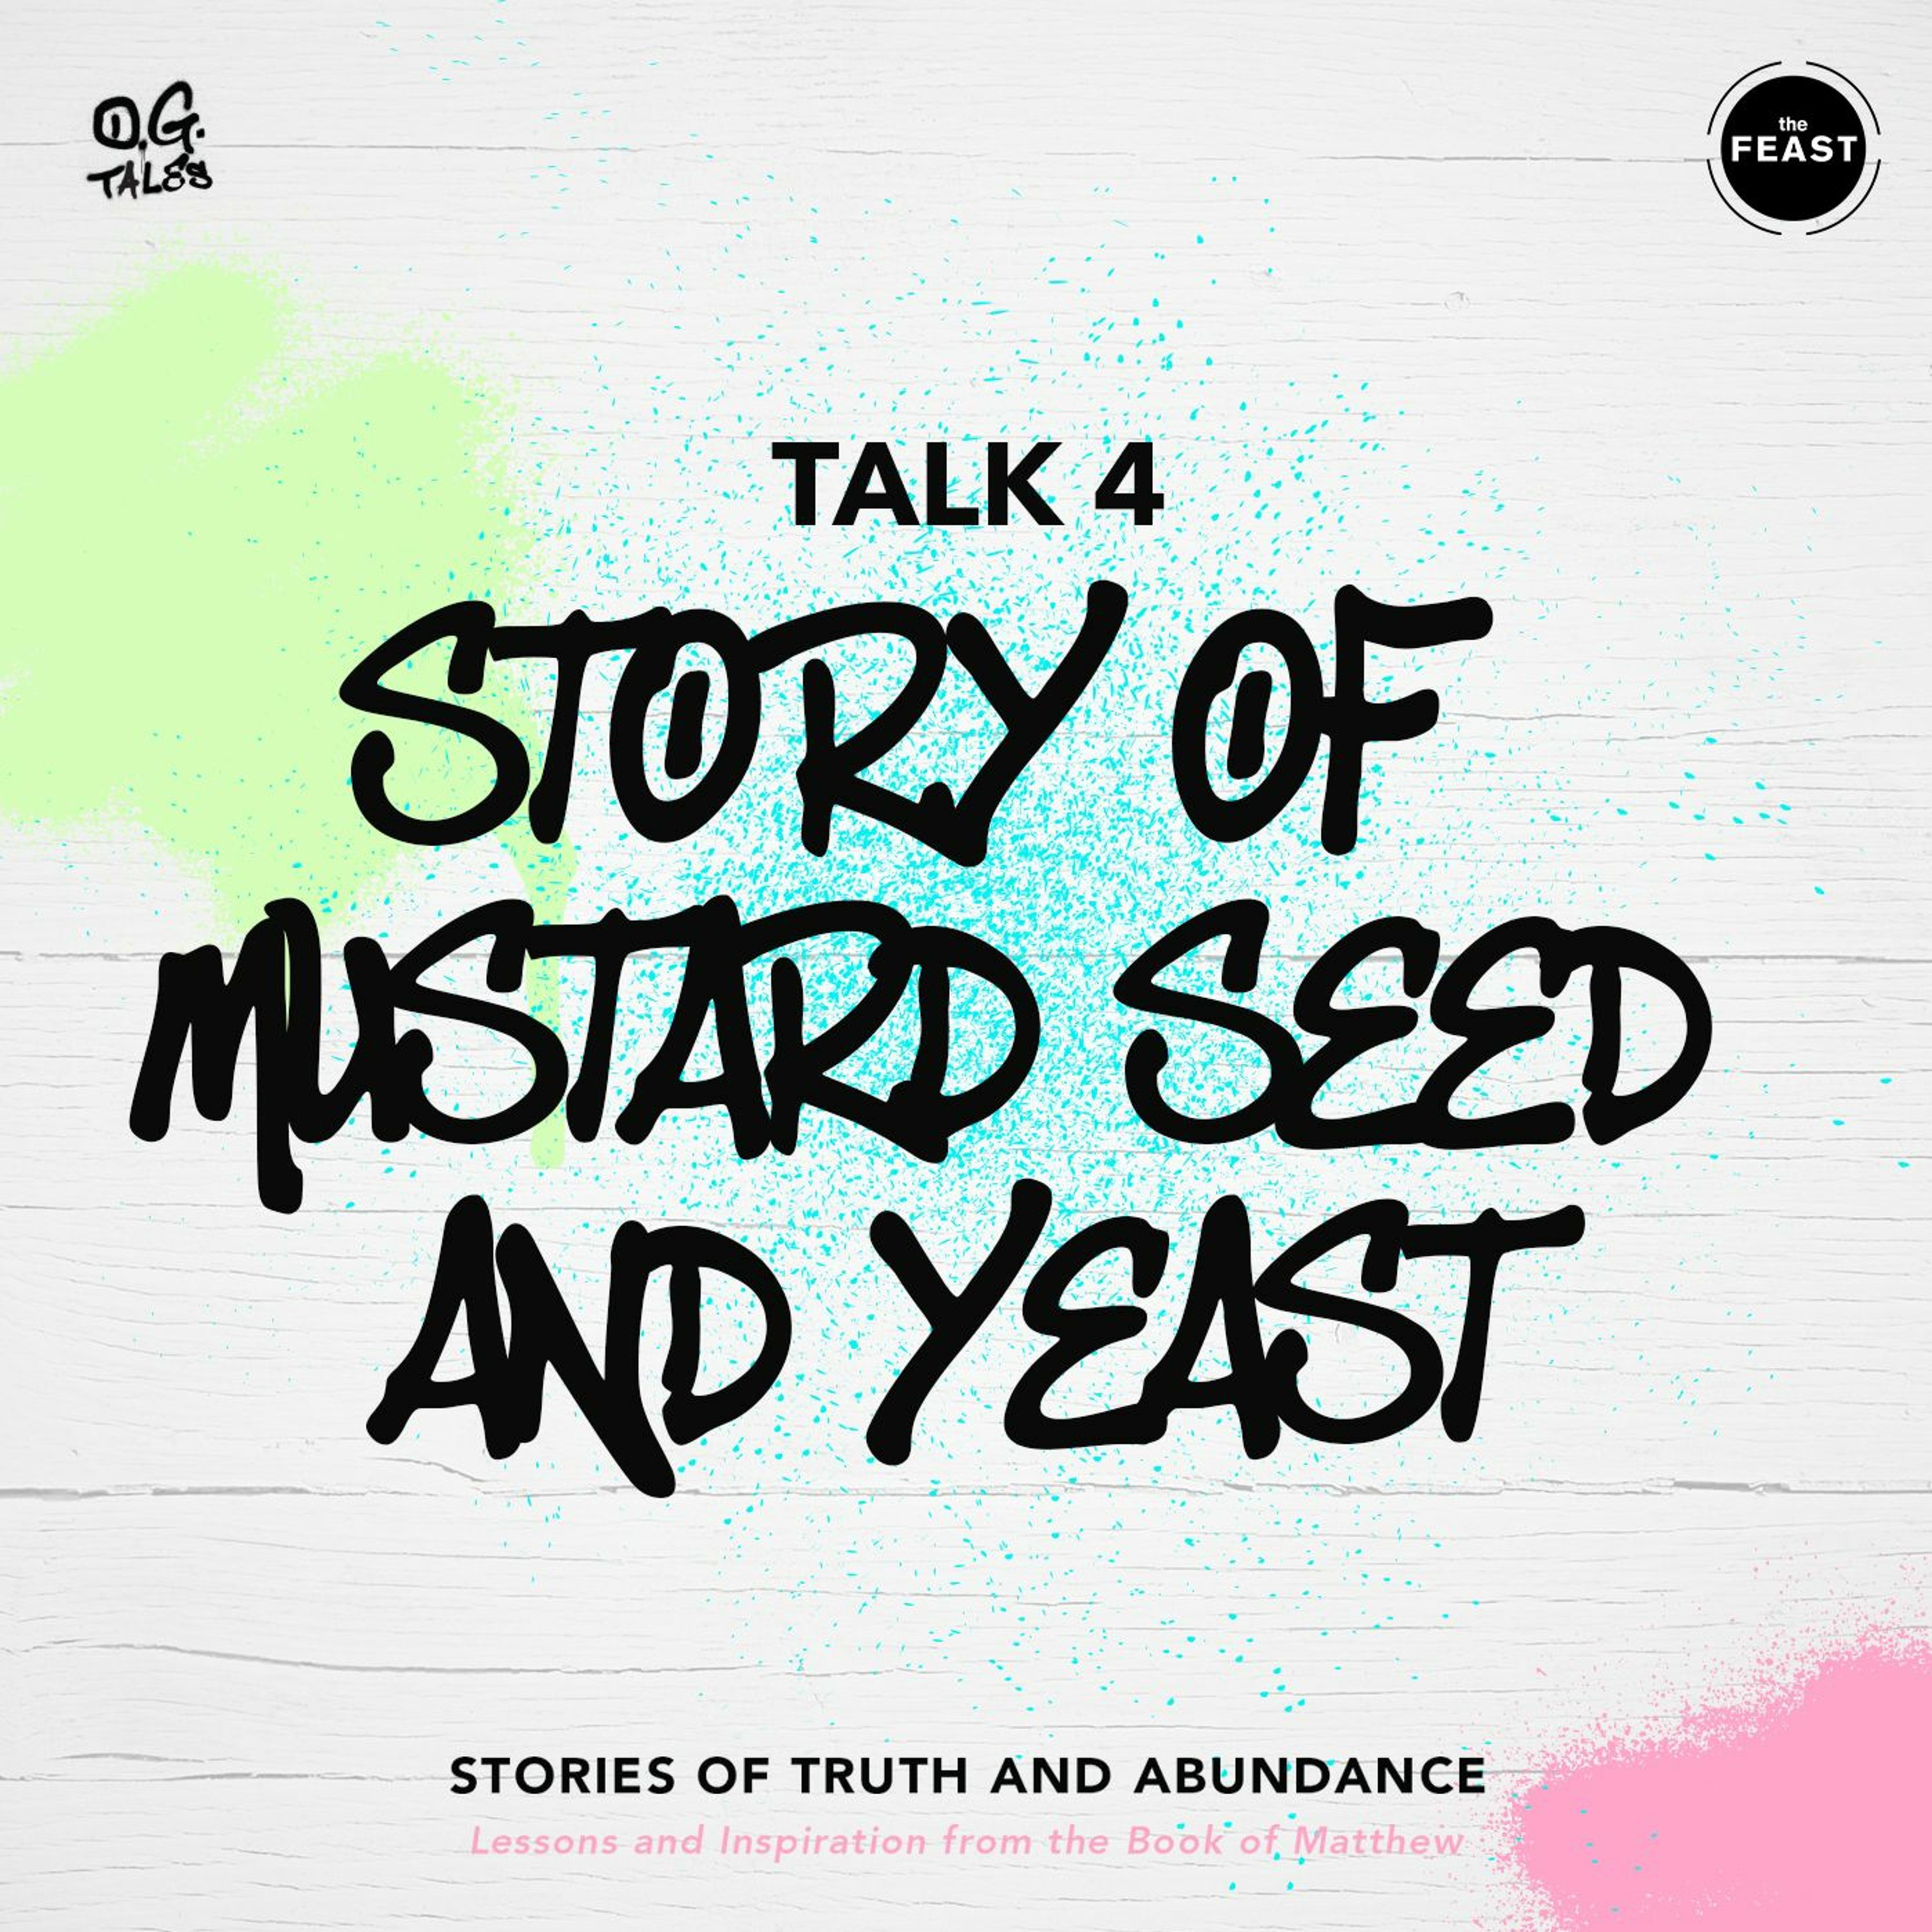 OG Tales Talk 4: STORY OF THE MUSTARD SEED AND YEAST